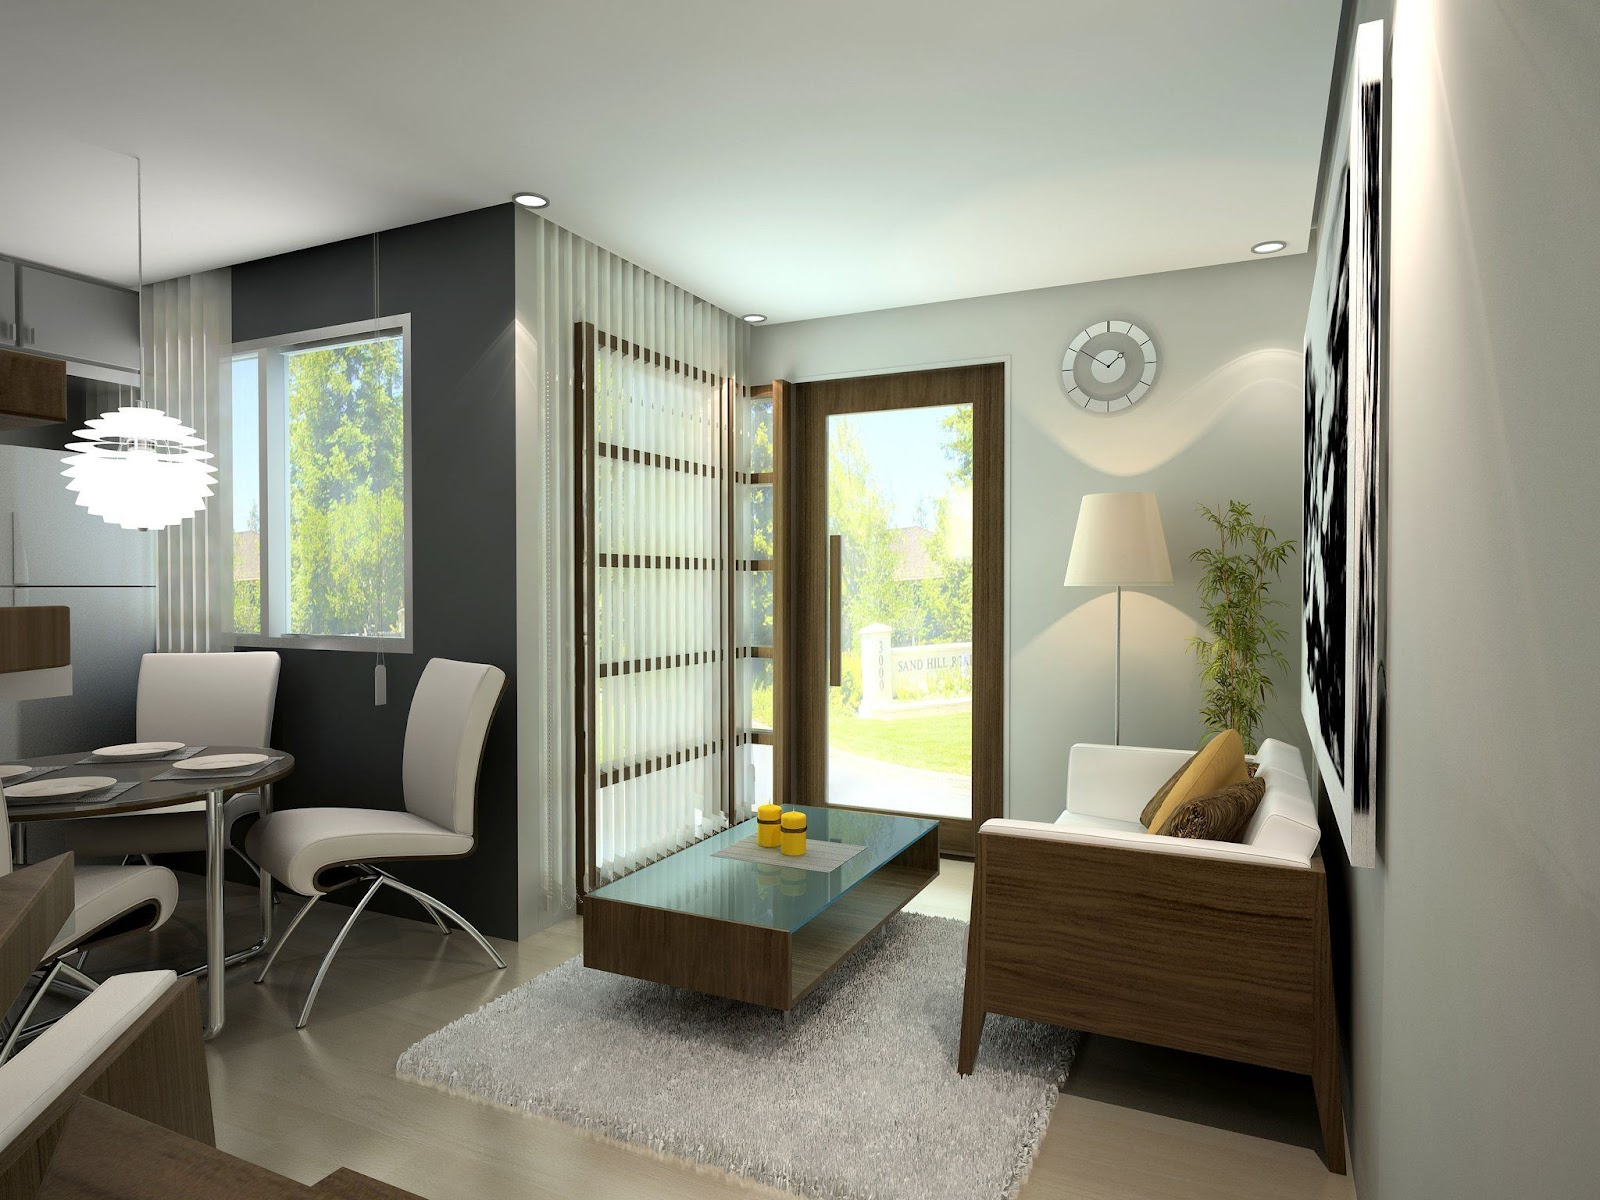 Interior design for first home - A Few Of The Many Benefits Of Owning A First Home